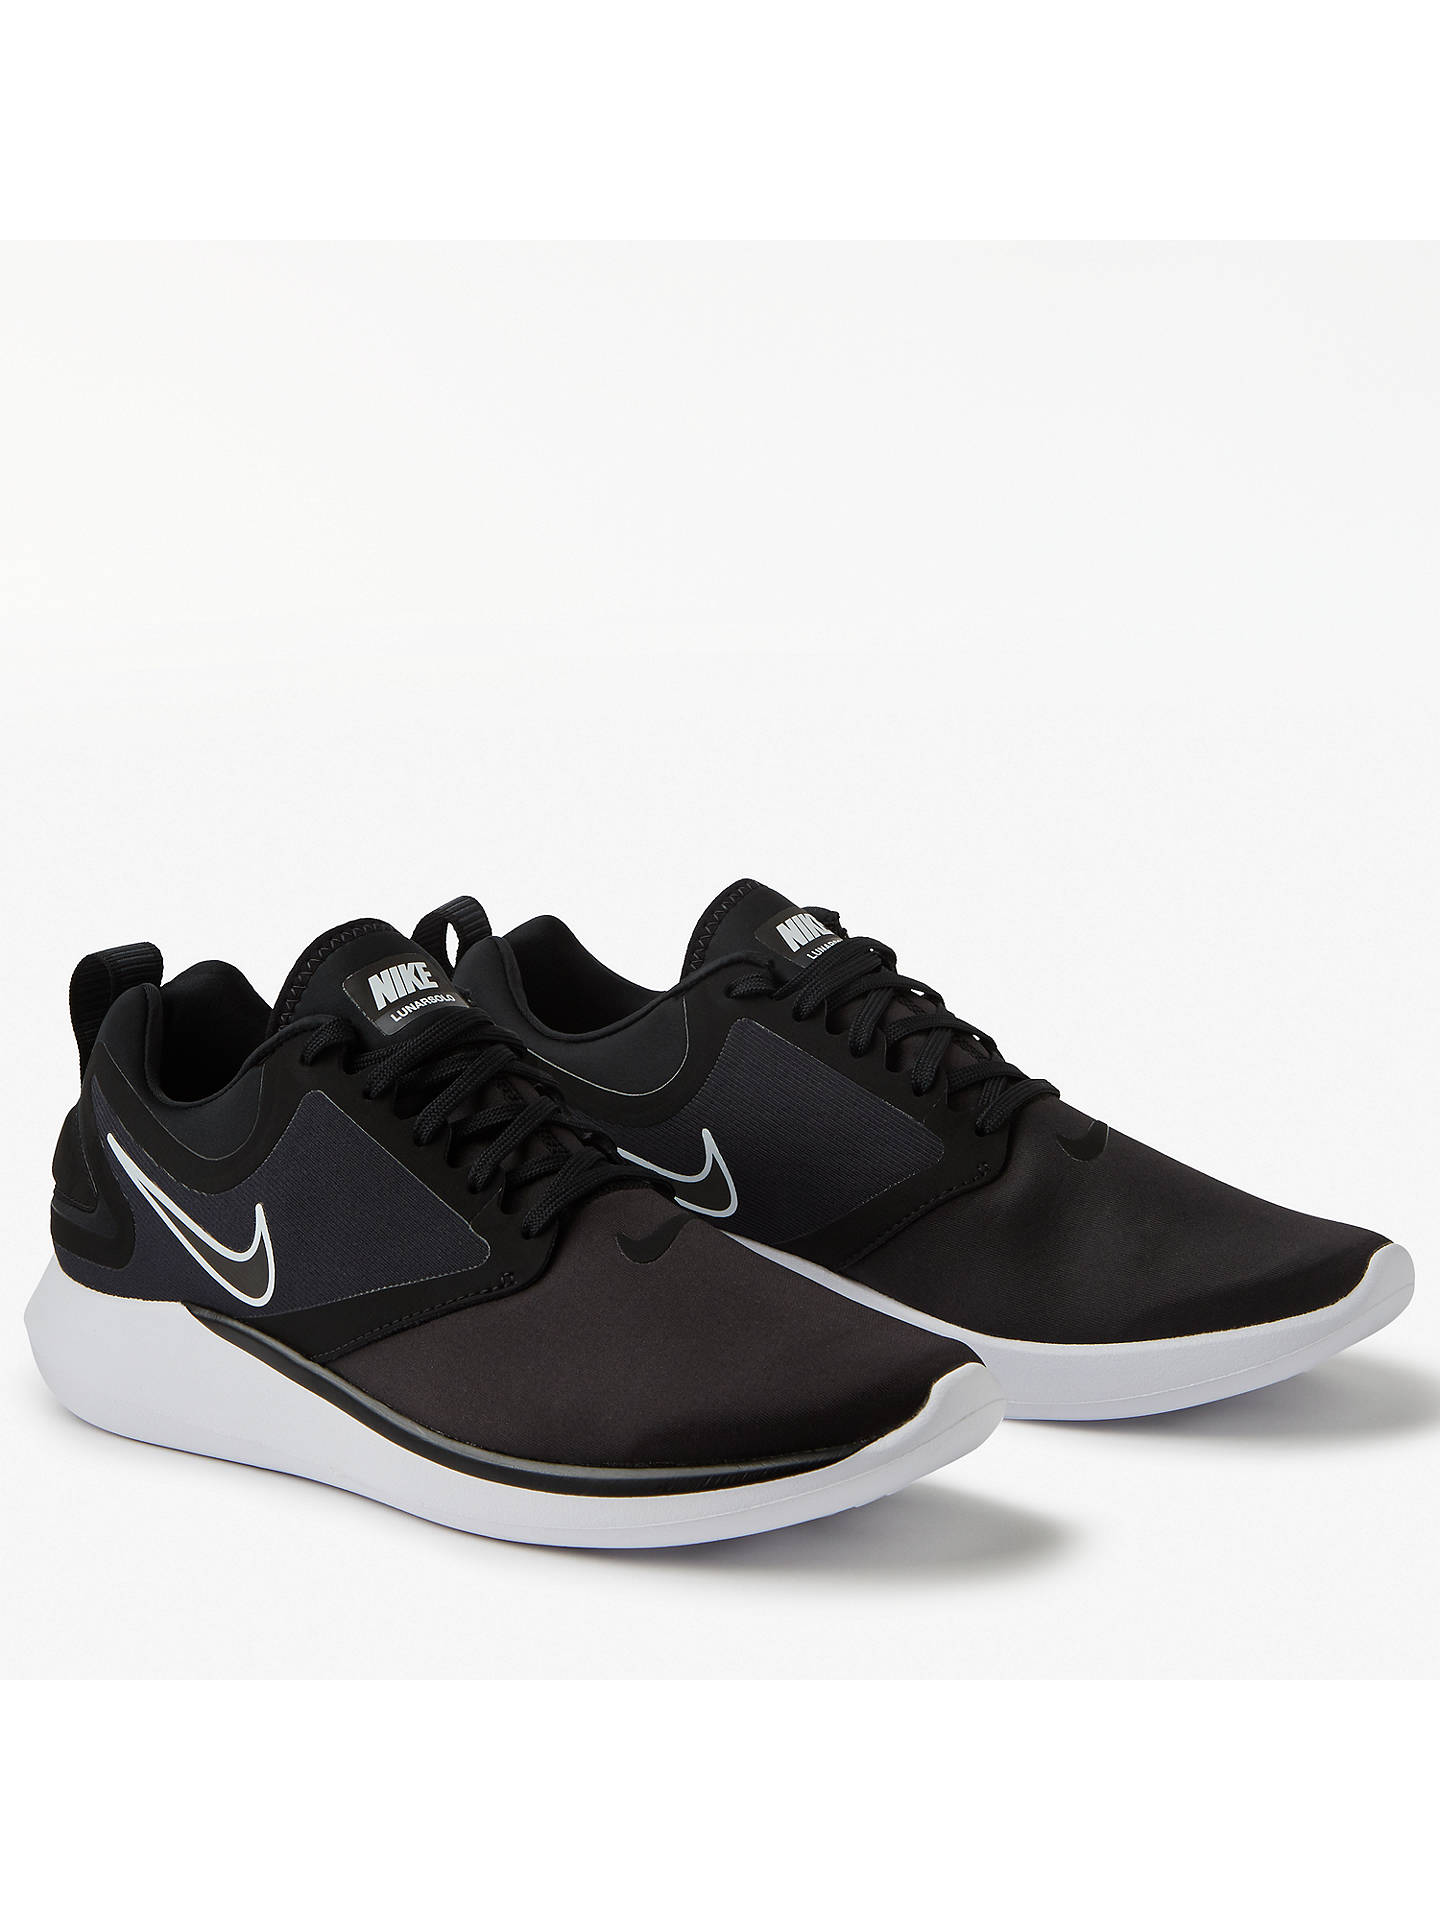 1bd39946acc Buy Nike LunarSolo Men s Running Shoes